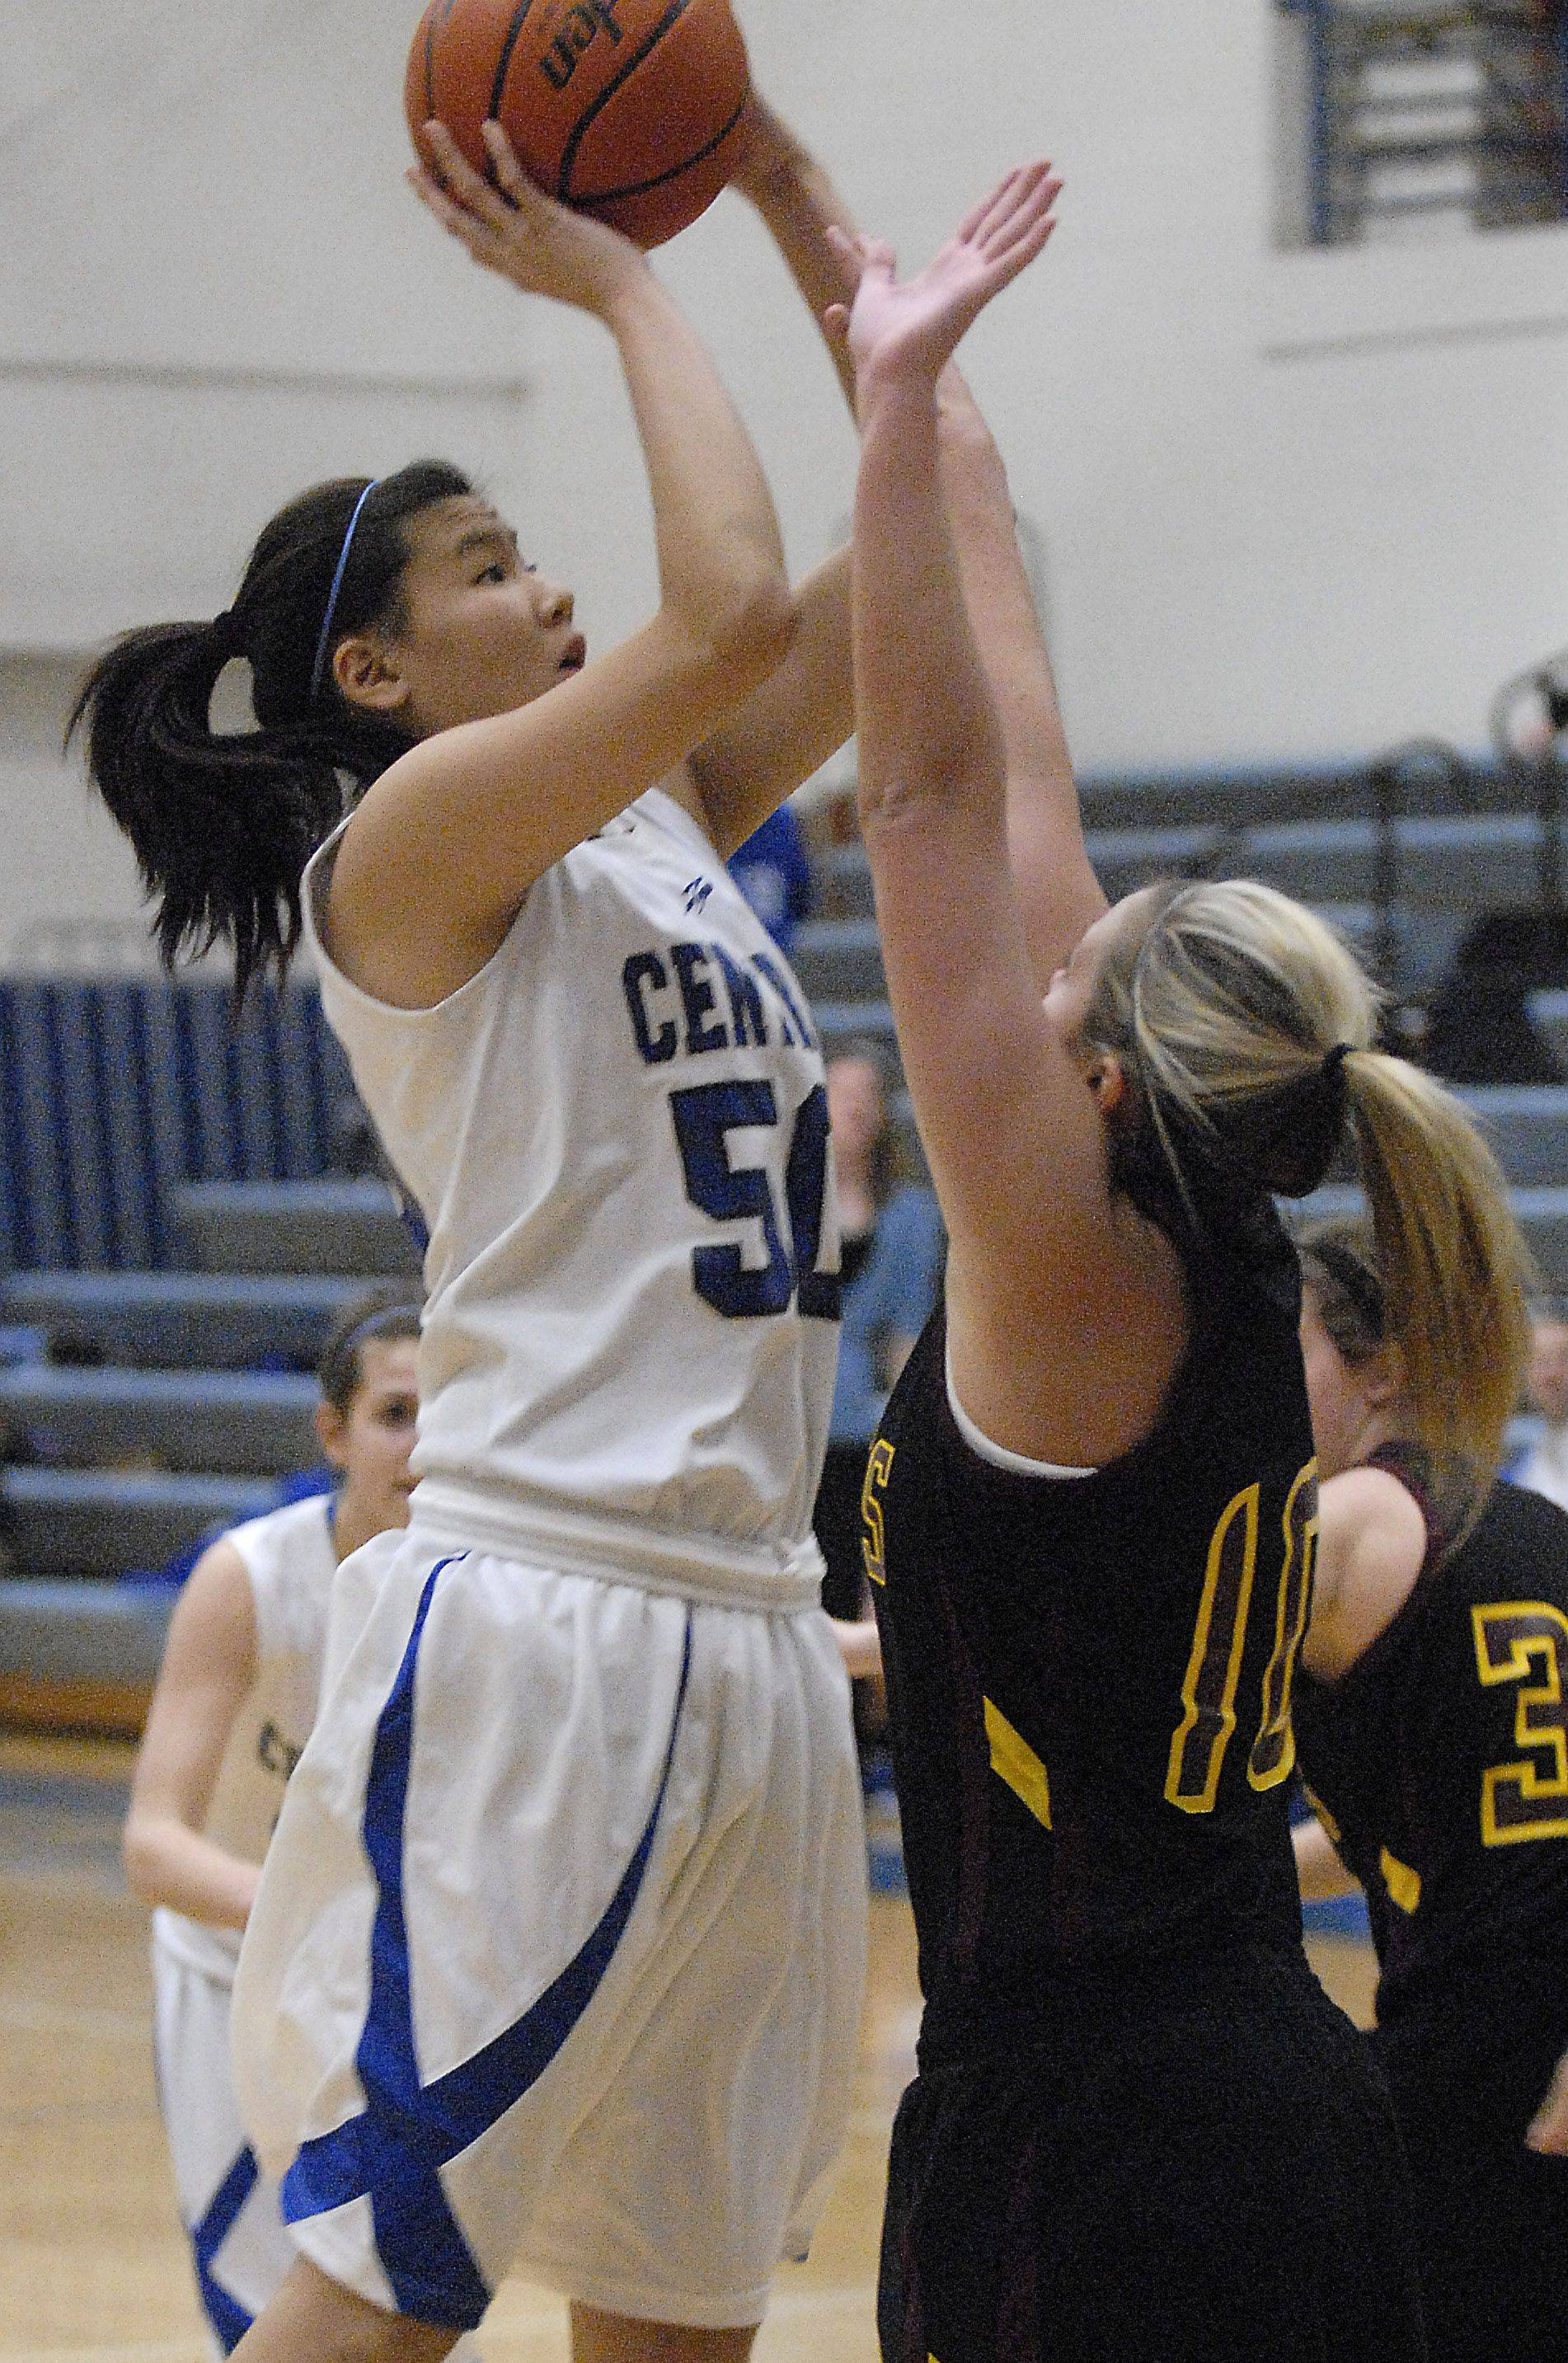 Burlington Central's Brenda Thasavong shoots past Richmond-Burton's Alex Callanan in the first quarter on Saturday, January 14.